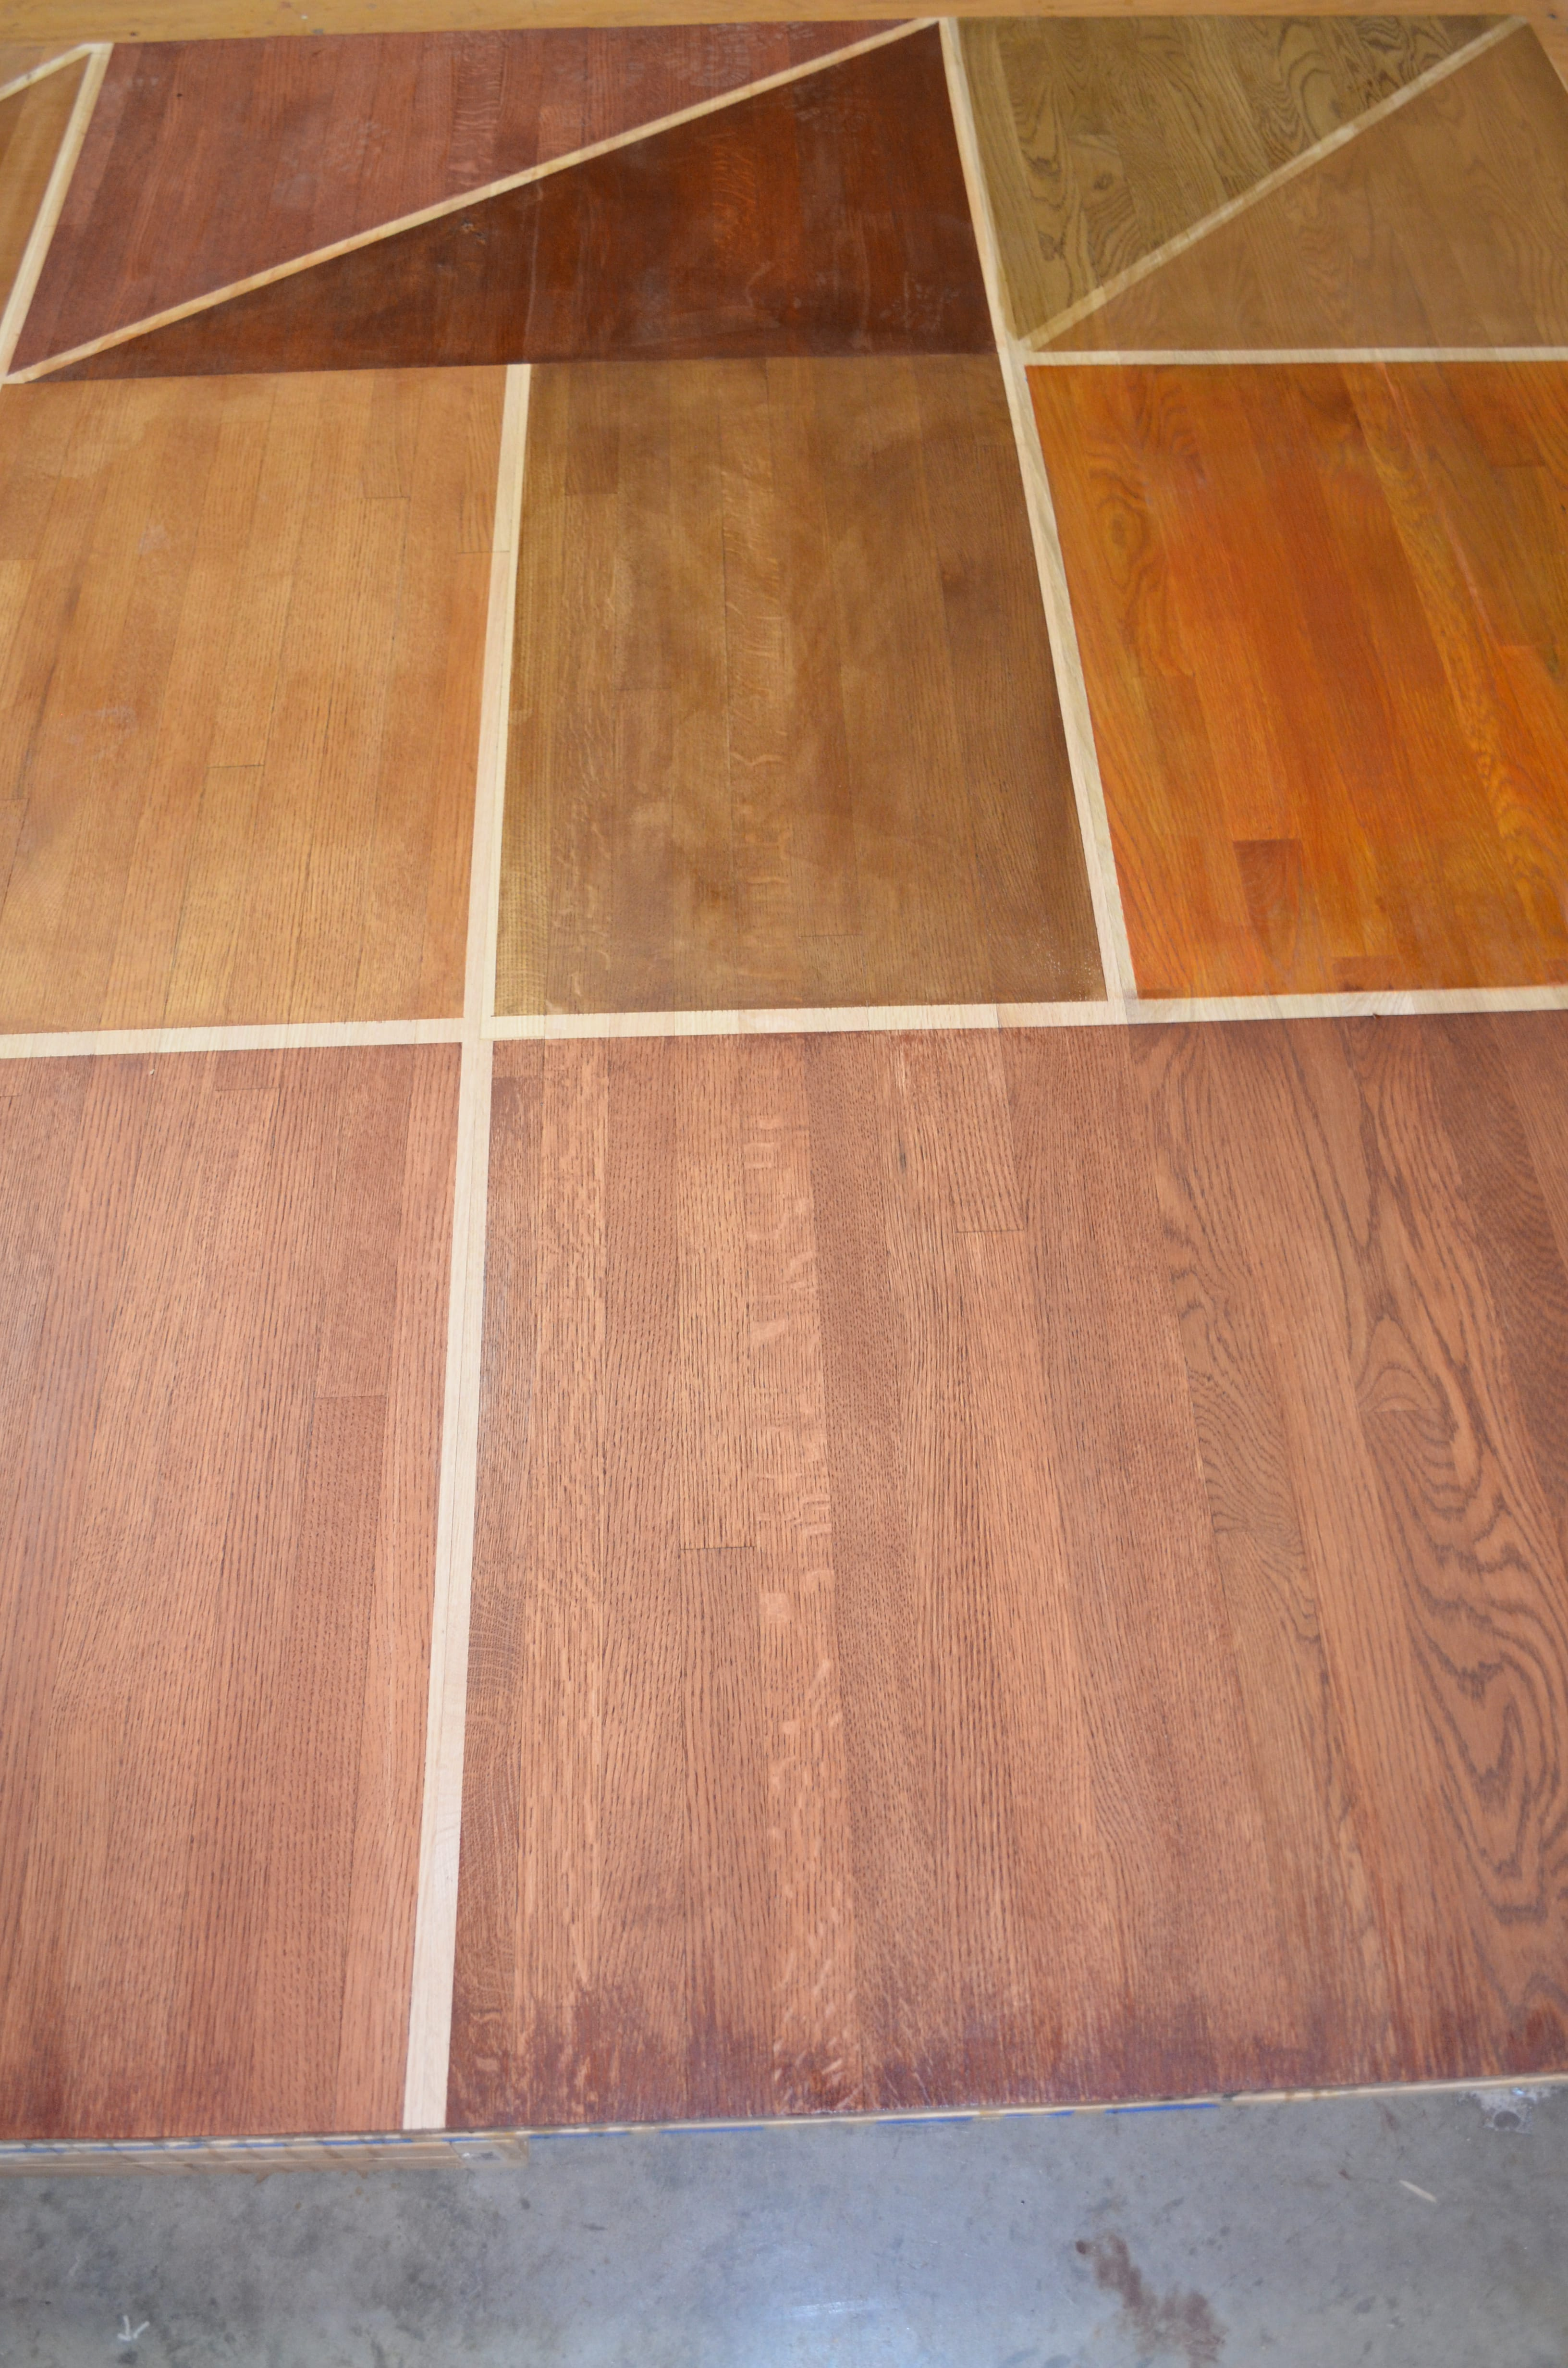 Is water based polyurethane vs oil based - There Is A Critical Question You Should Put To Your Hardwood Flooring Contractor If You Are Planning To Finish Your Floor With A Water Based Stain Does He